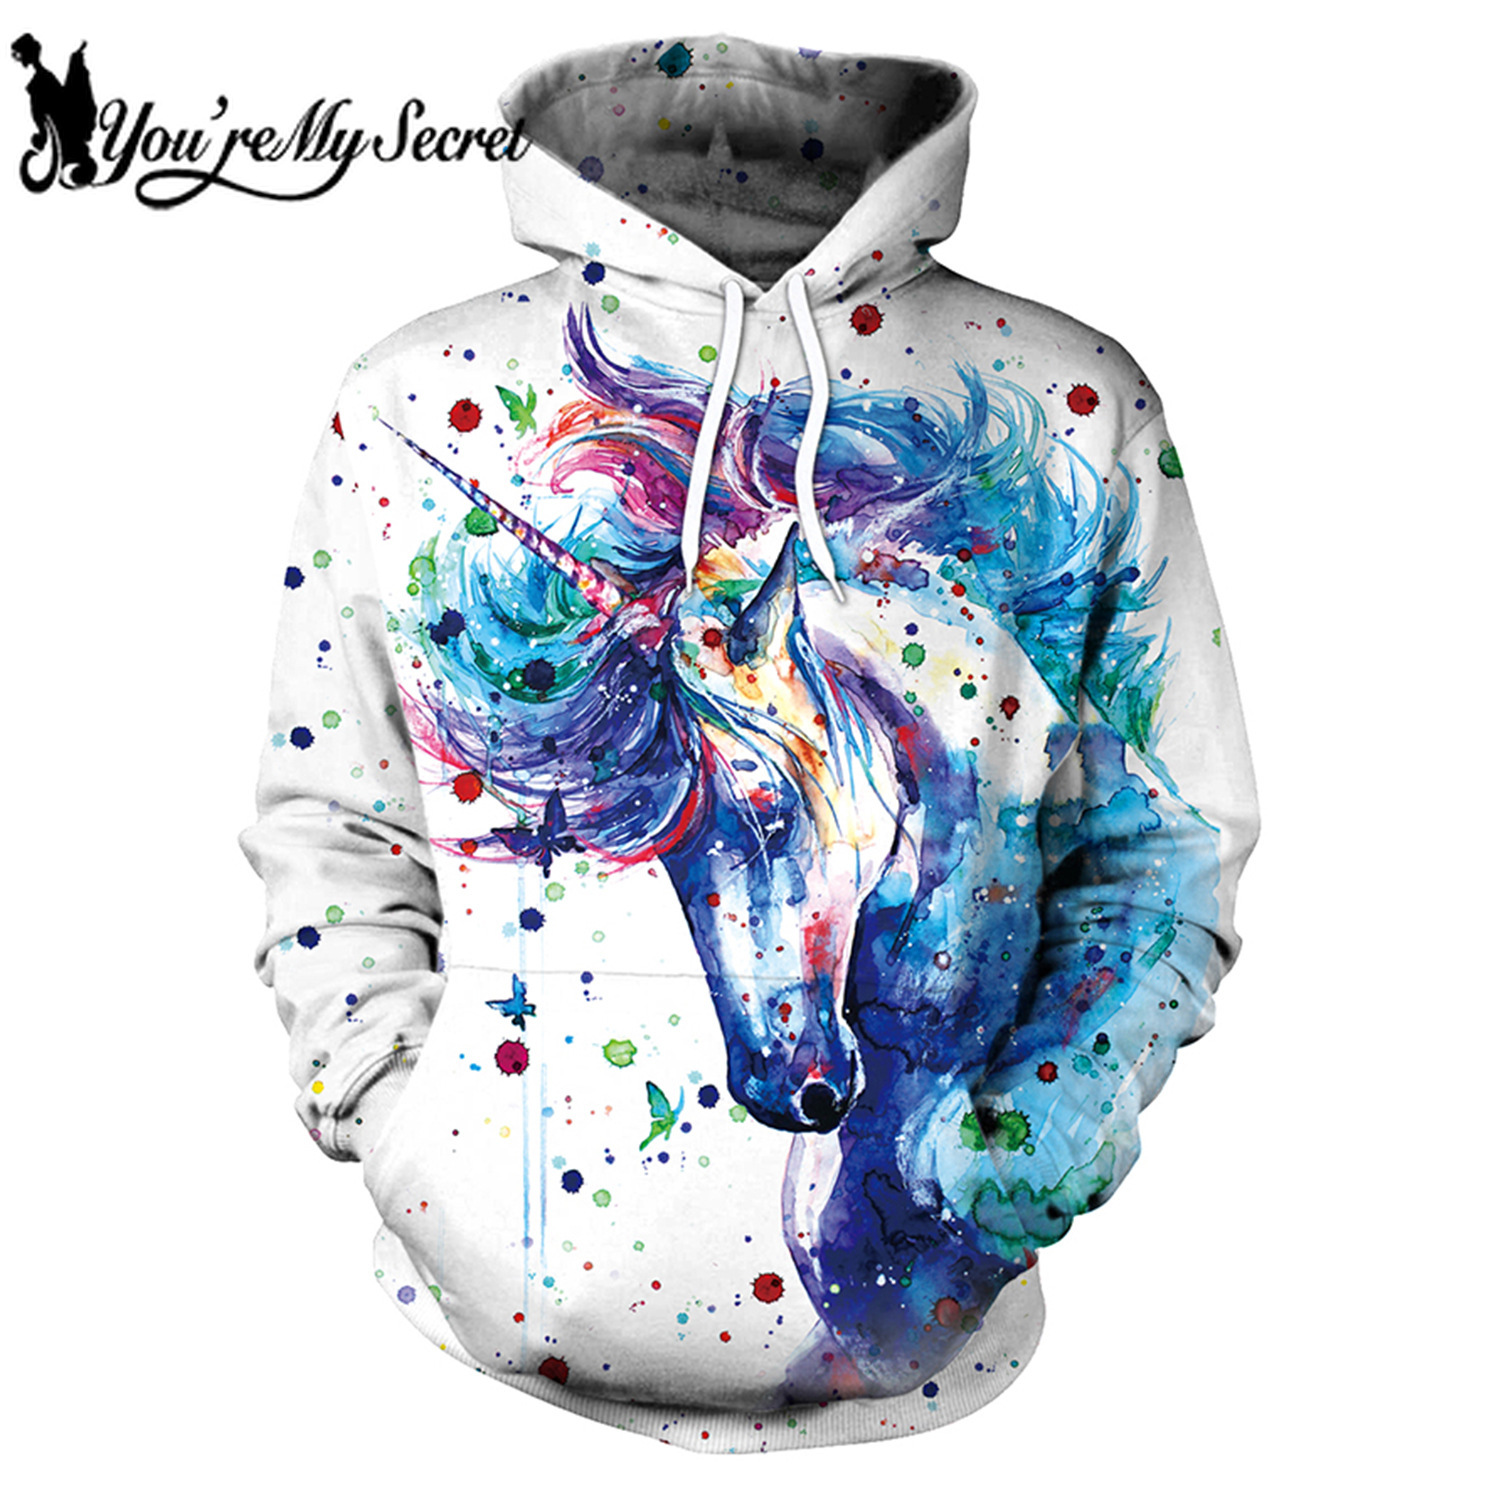 [You're My Secret] 2019 New Fashion Digital Print Unicorn Anime Long Sleeve Outdoor Warm Hooded Hoodie Sweatshirt for Women Men